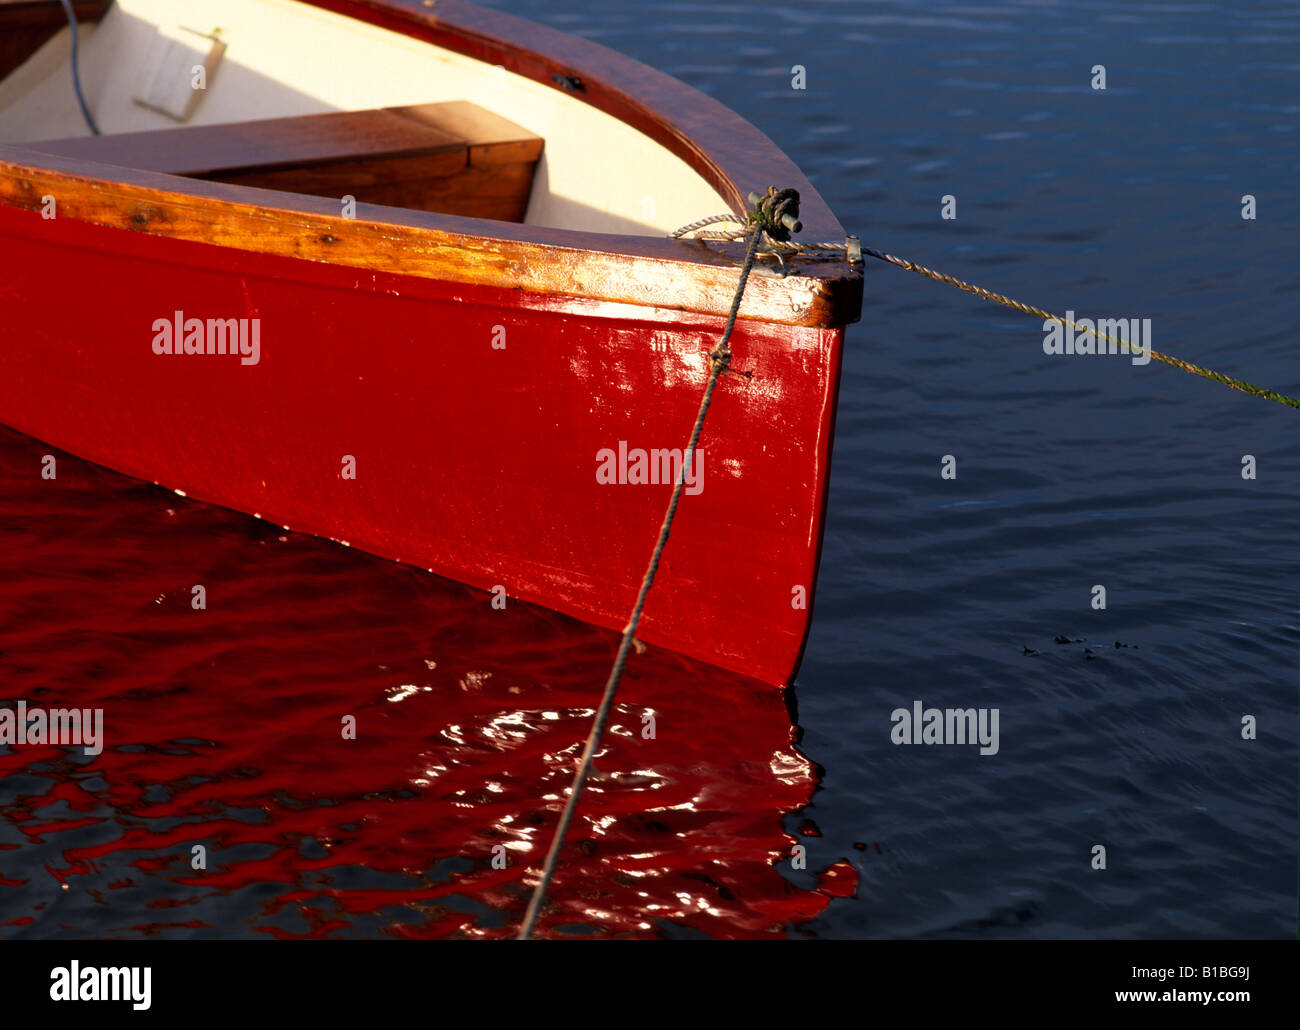 A bright red rowing boat catching the evening sun and reflected in the water - Stock Image